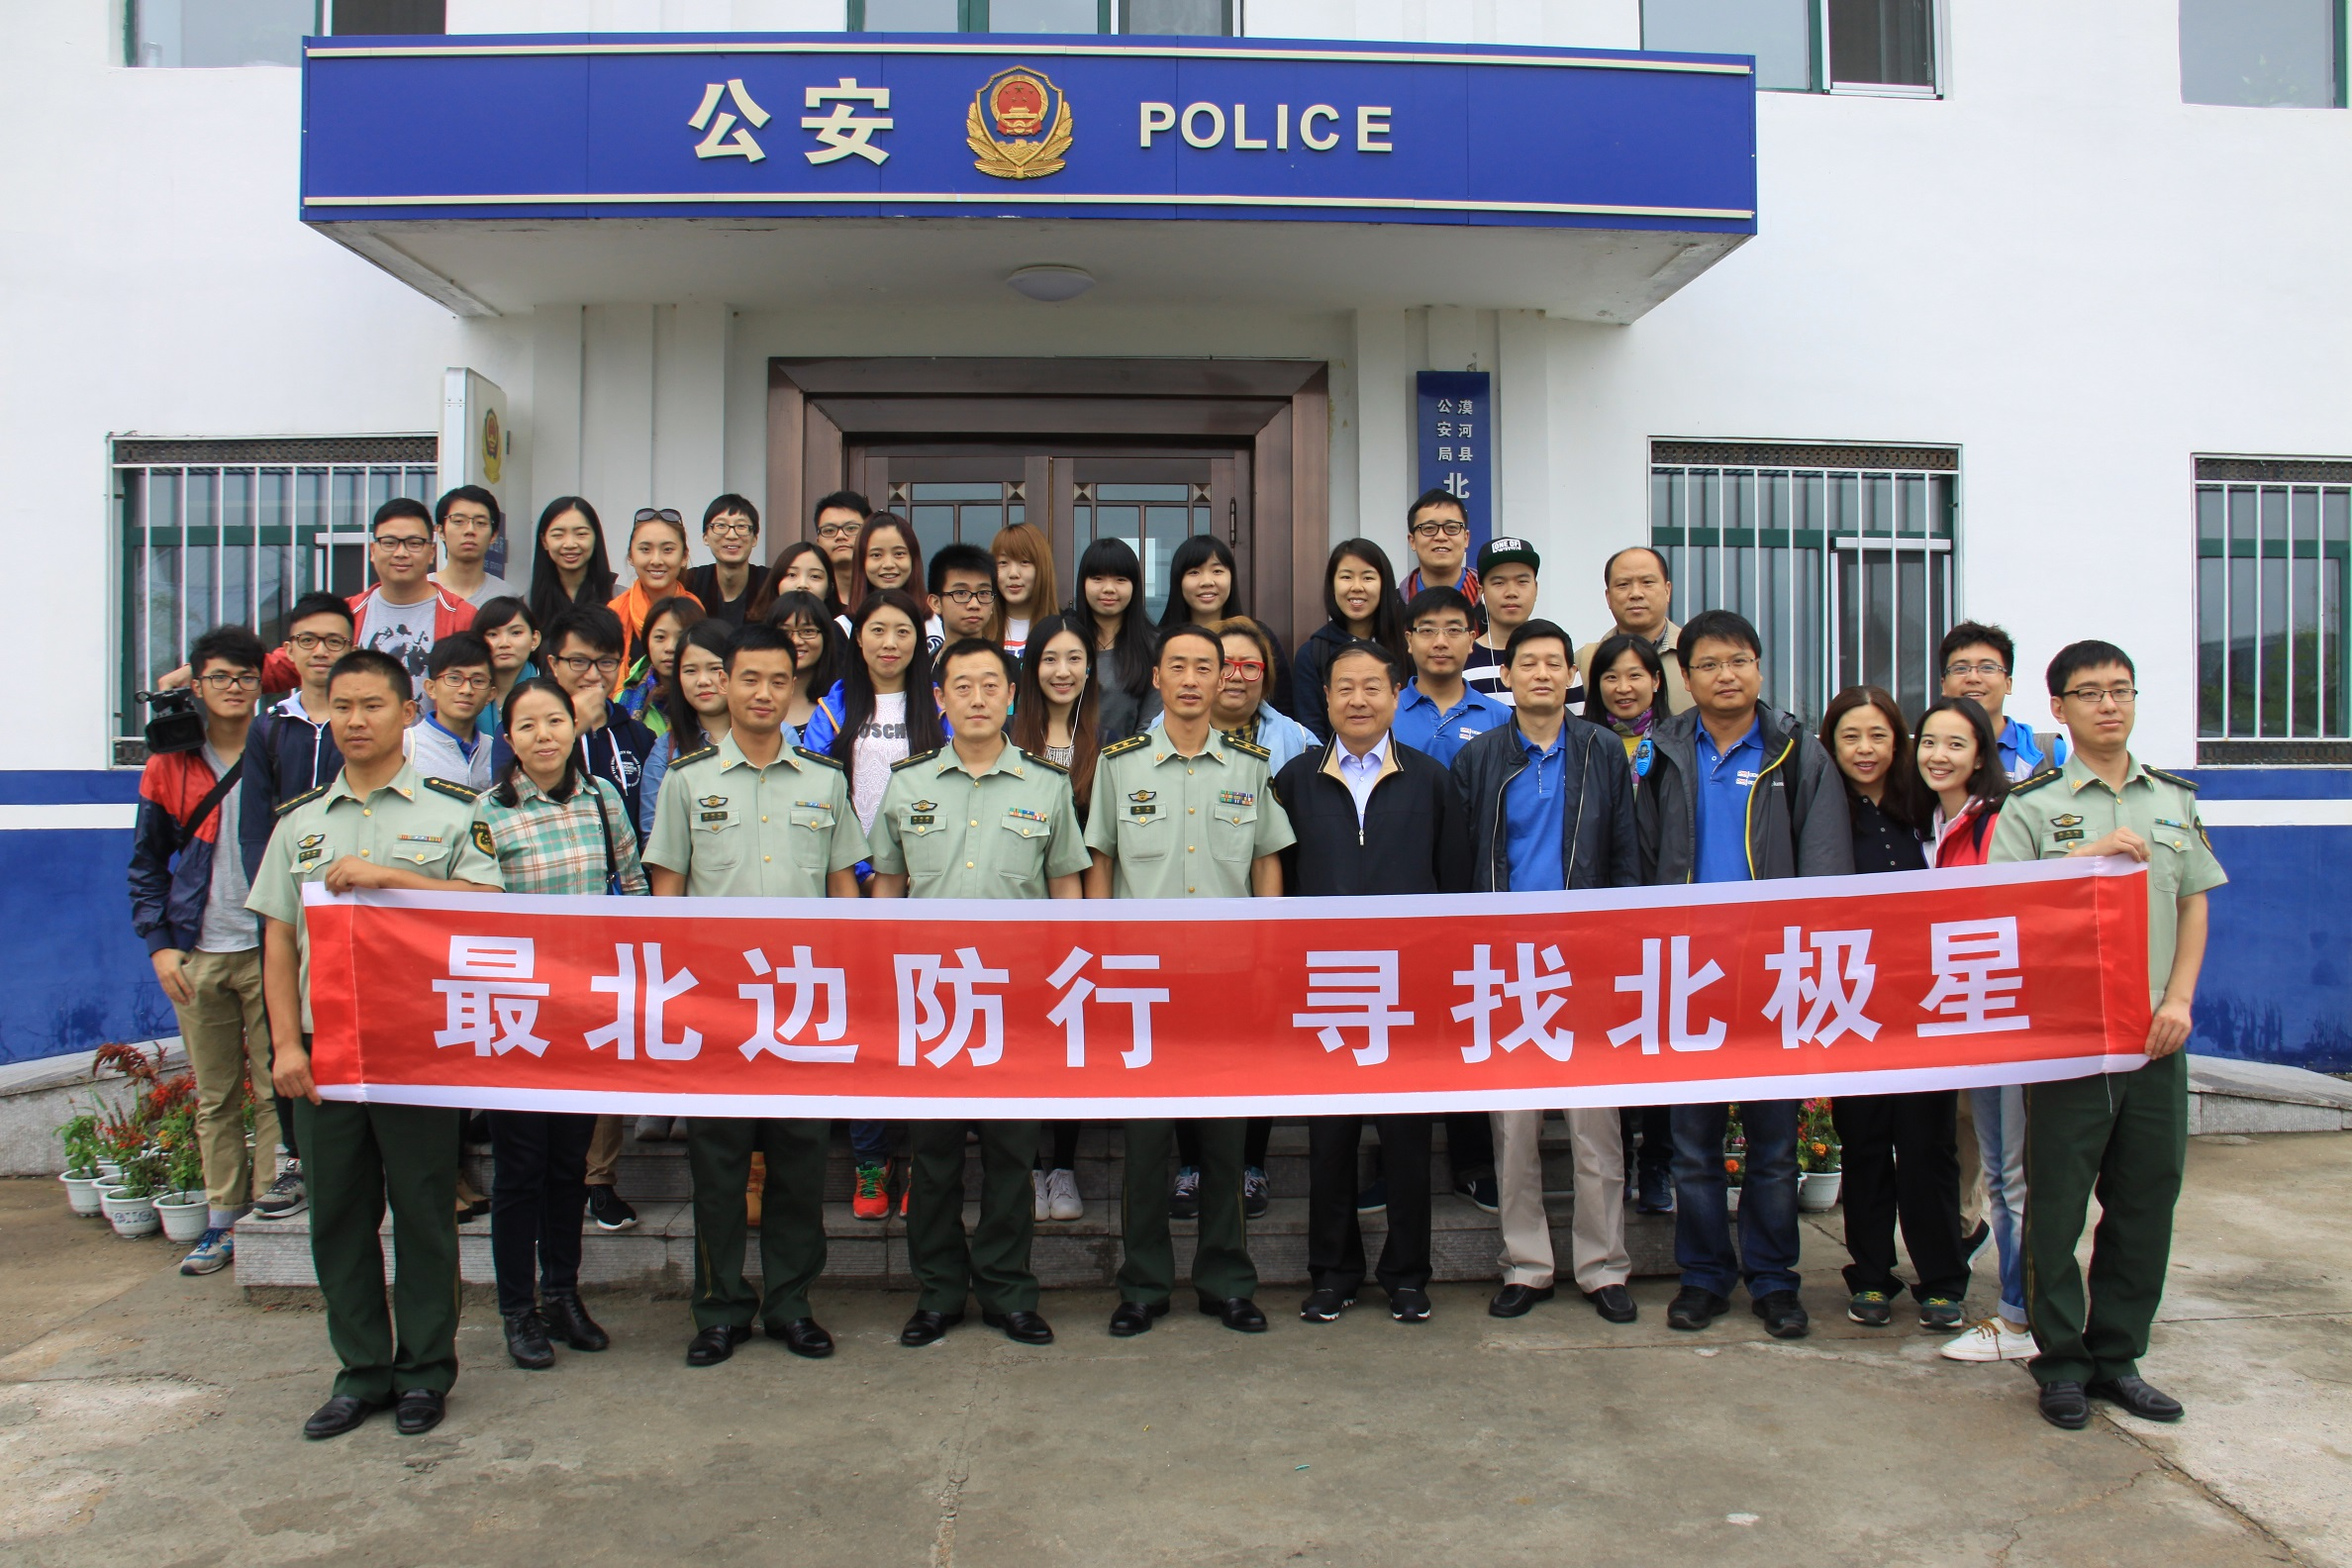 A group photo of participants in the field trip